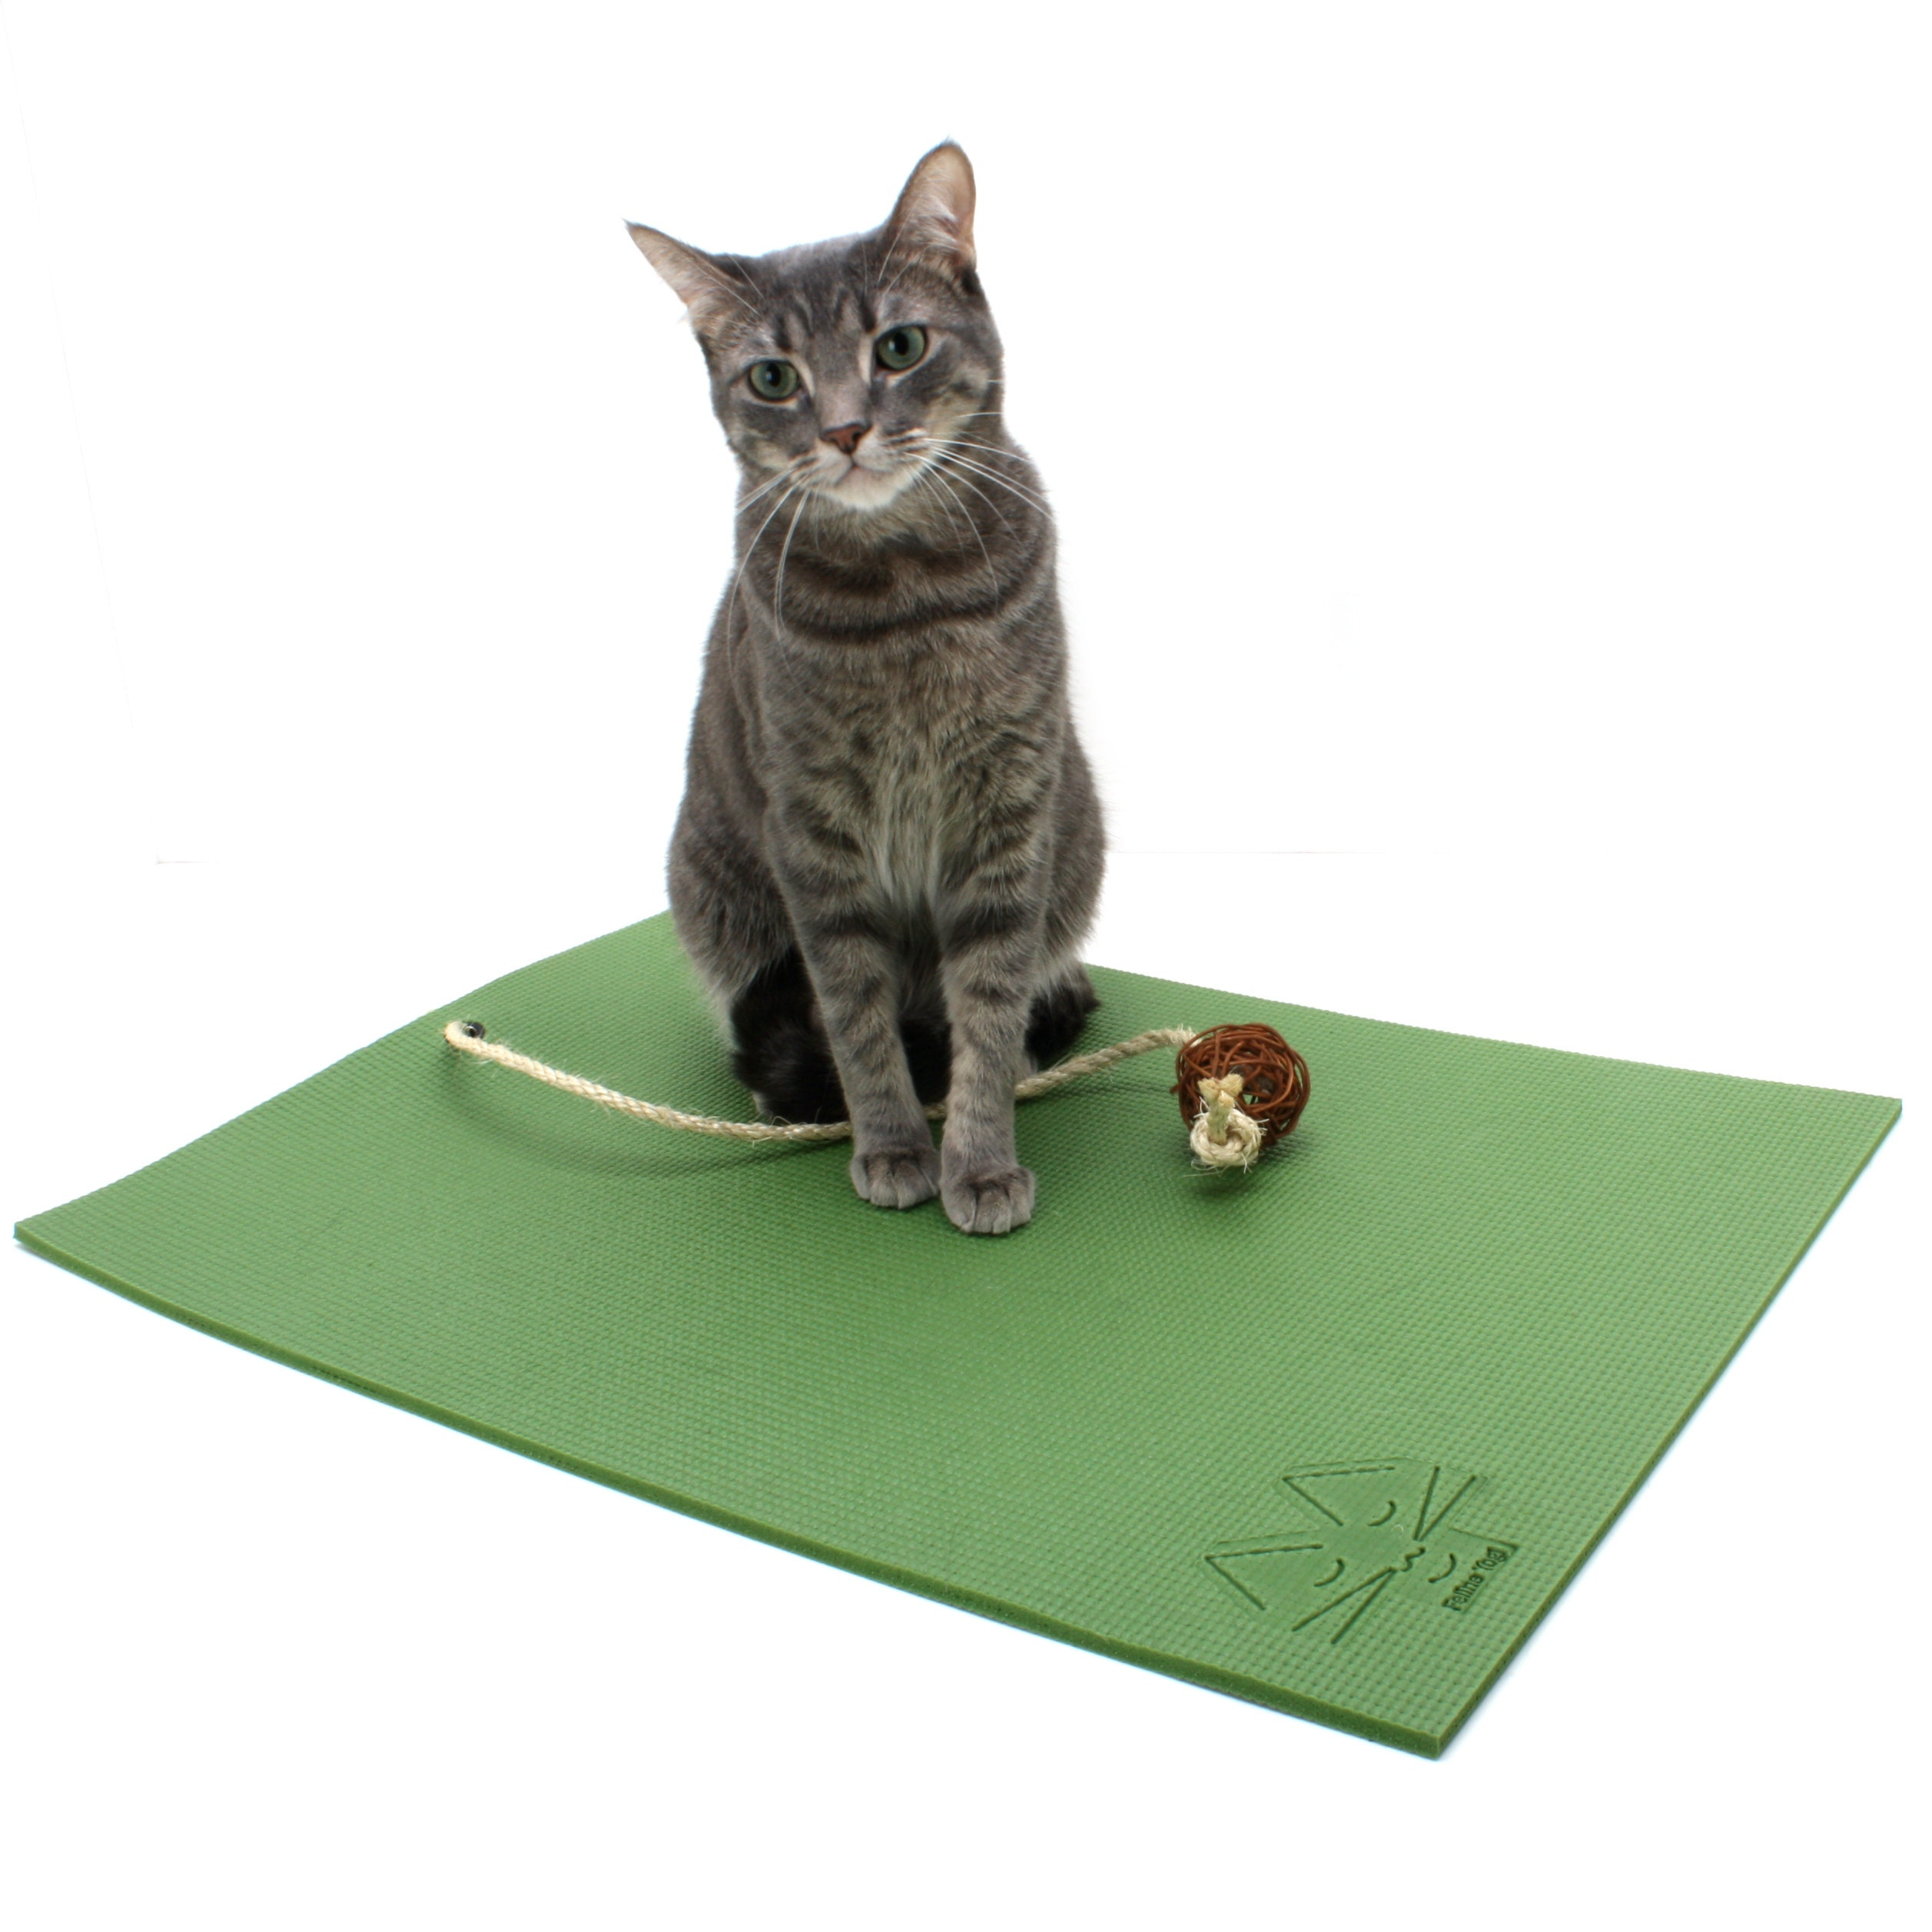 Cat Mats And Cat Toys With A Yoga Cat Theme By FelineYogi